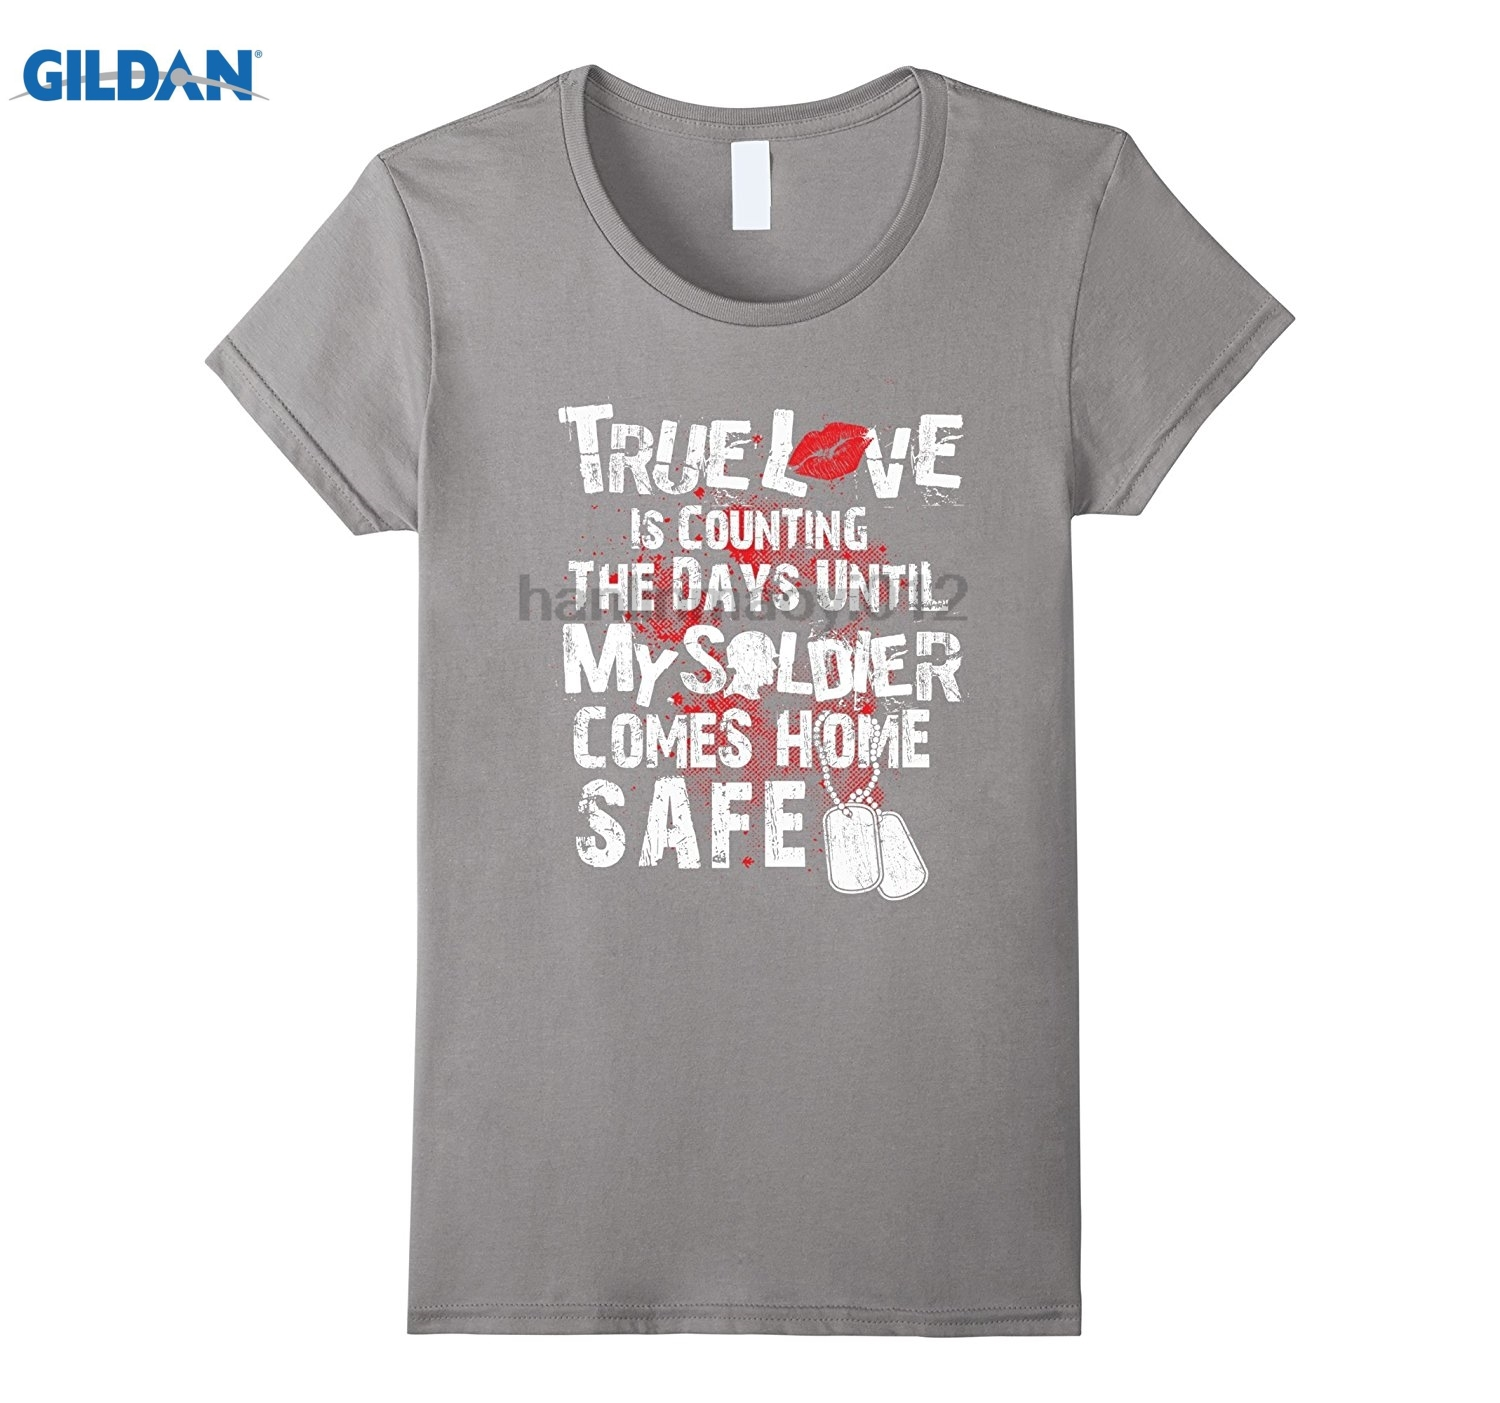 GILDAN Army Wife and Girlfriend T-Shirt - Until My Solider is Safe Womens T-shirt ...